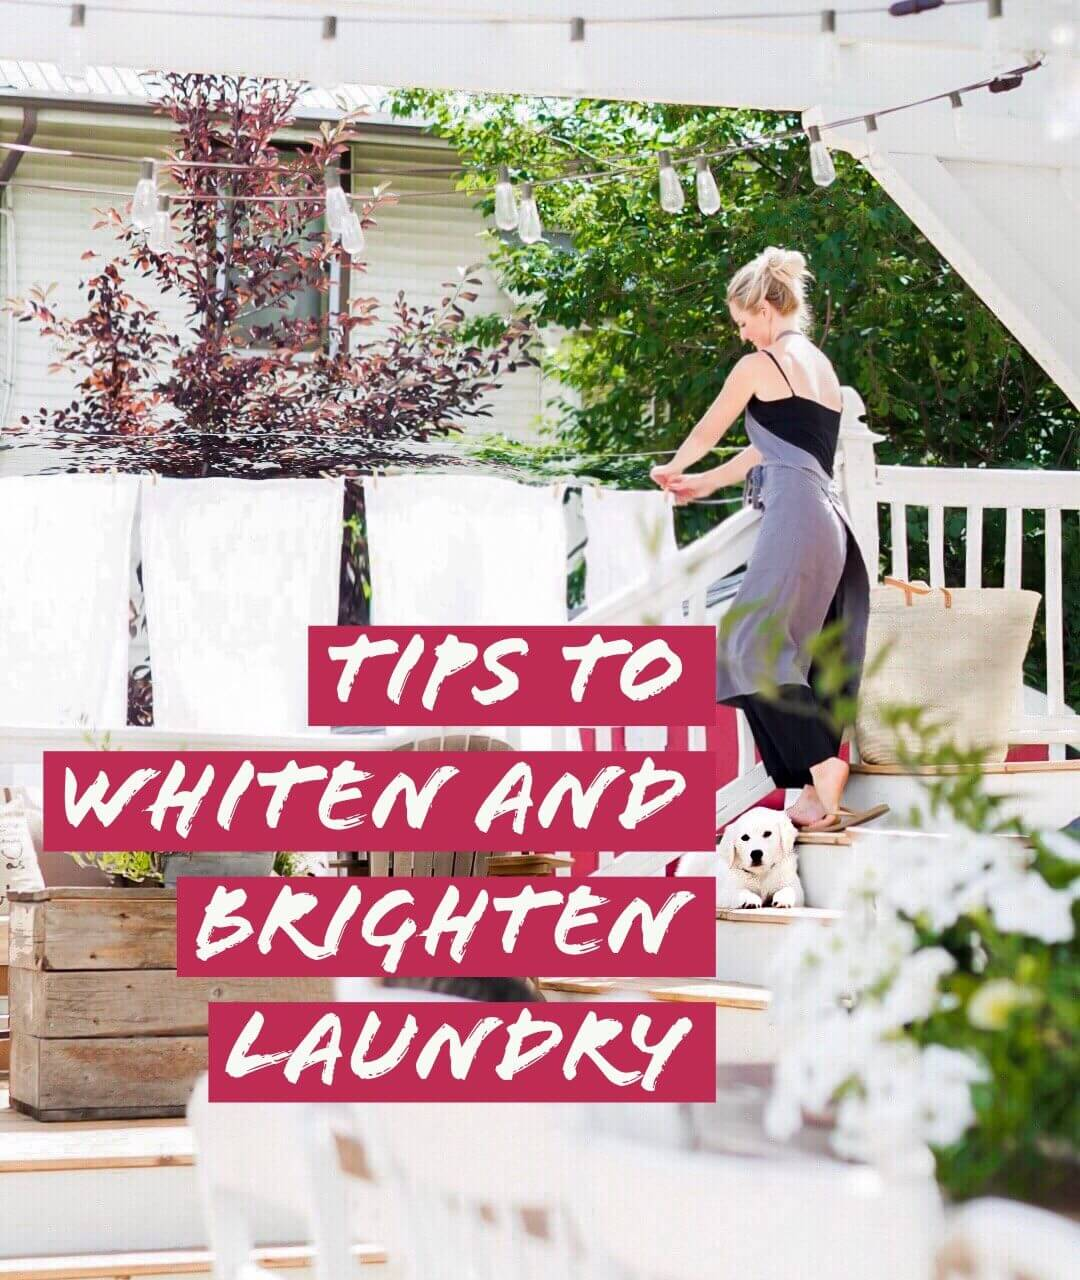 Tips to Whiten and Brighten Laundry